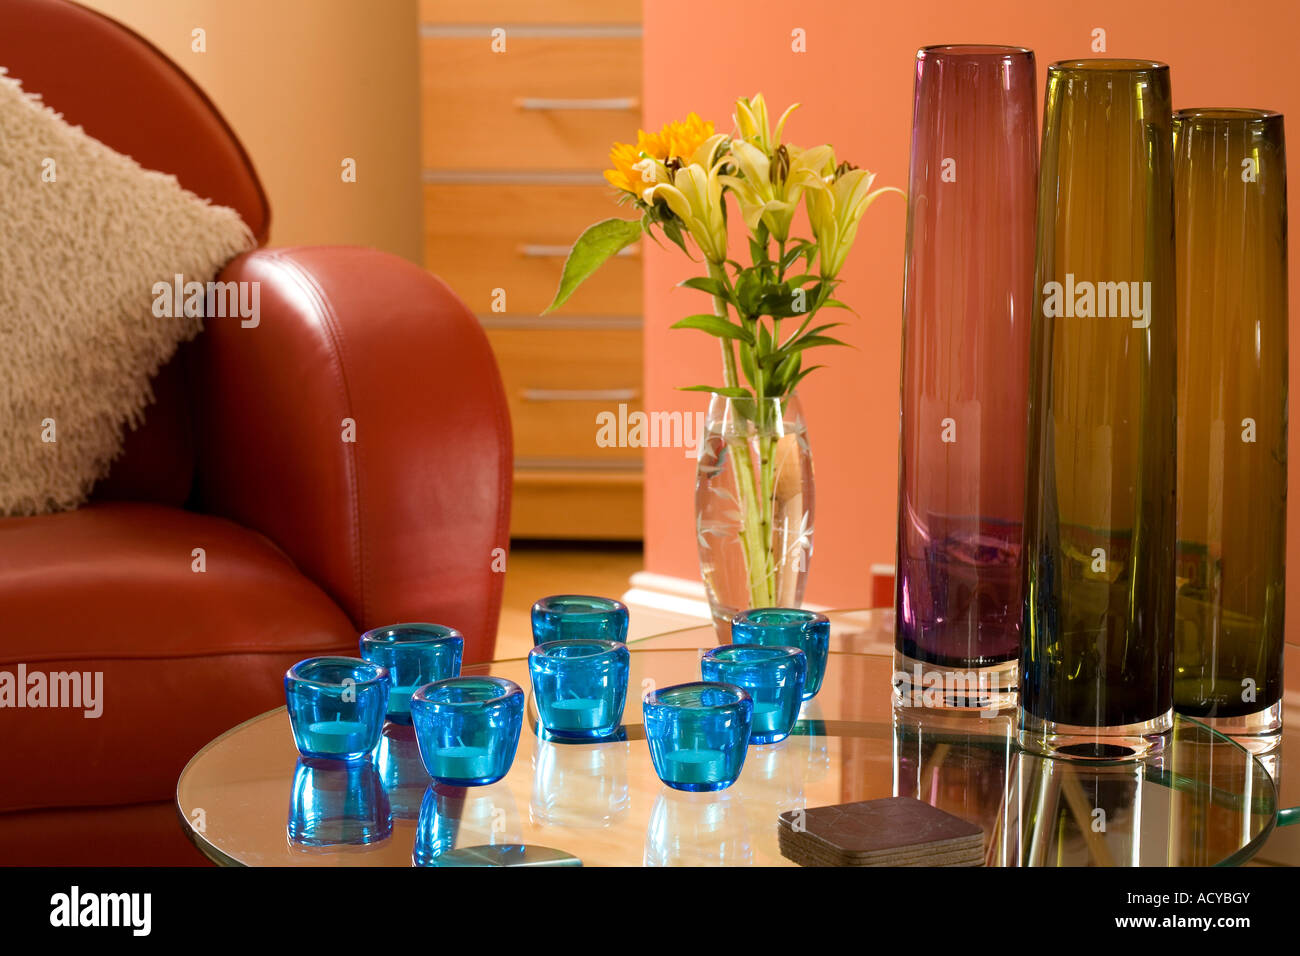 Living area with coloured glass vases and candle holders on glass surface and sofa to left. - Stock Image